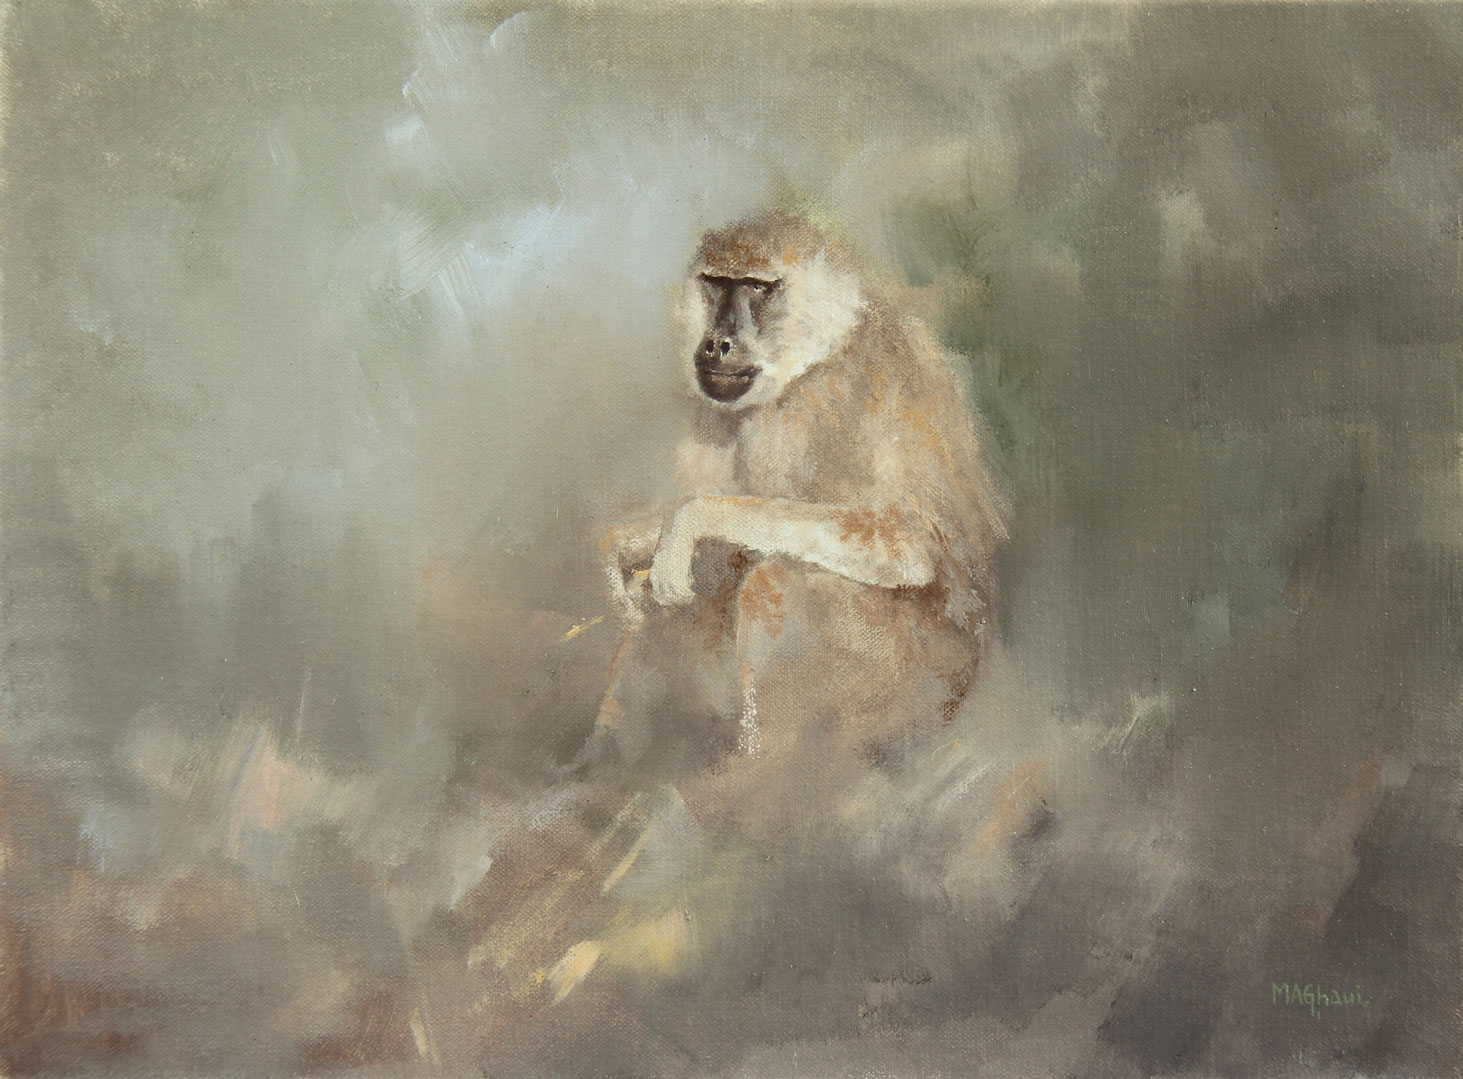 Baboon---'--Baboon-Study-'---Oil-on-linen-canvas---Size-12-inches-x-16-inches---May-'12